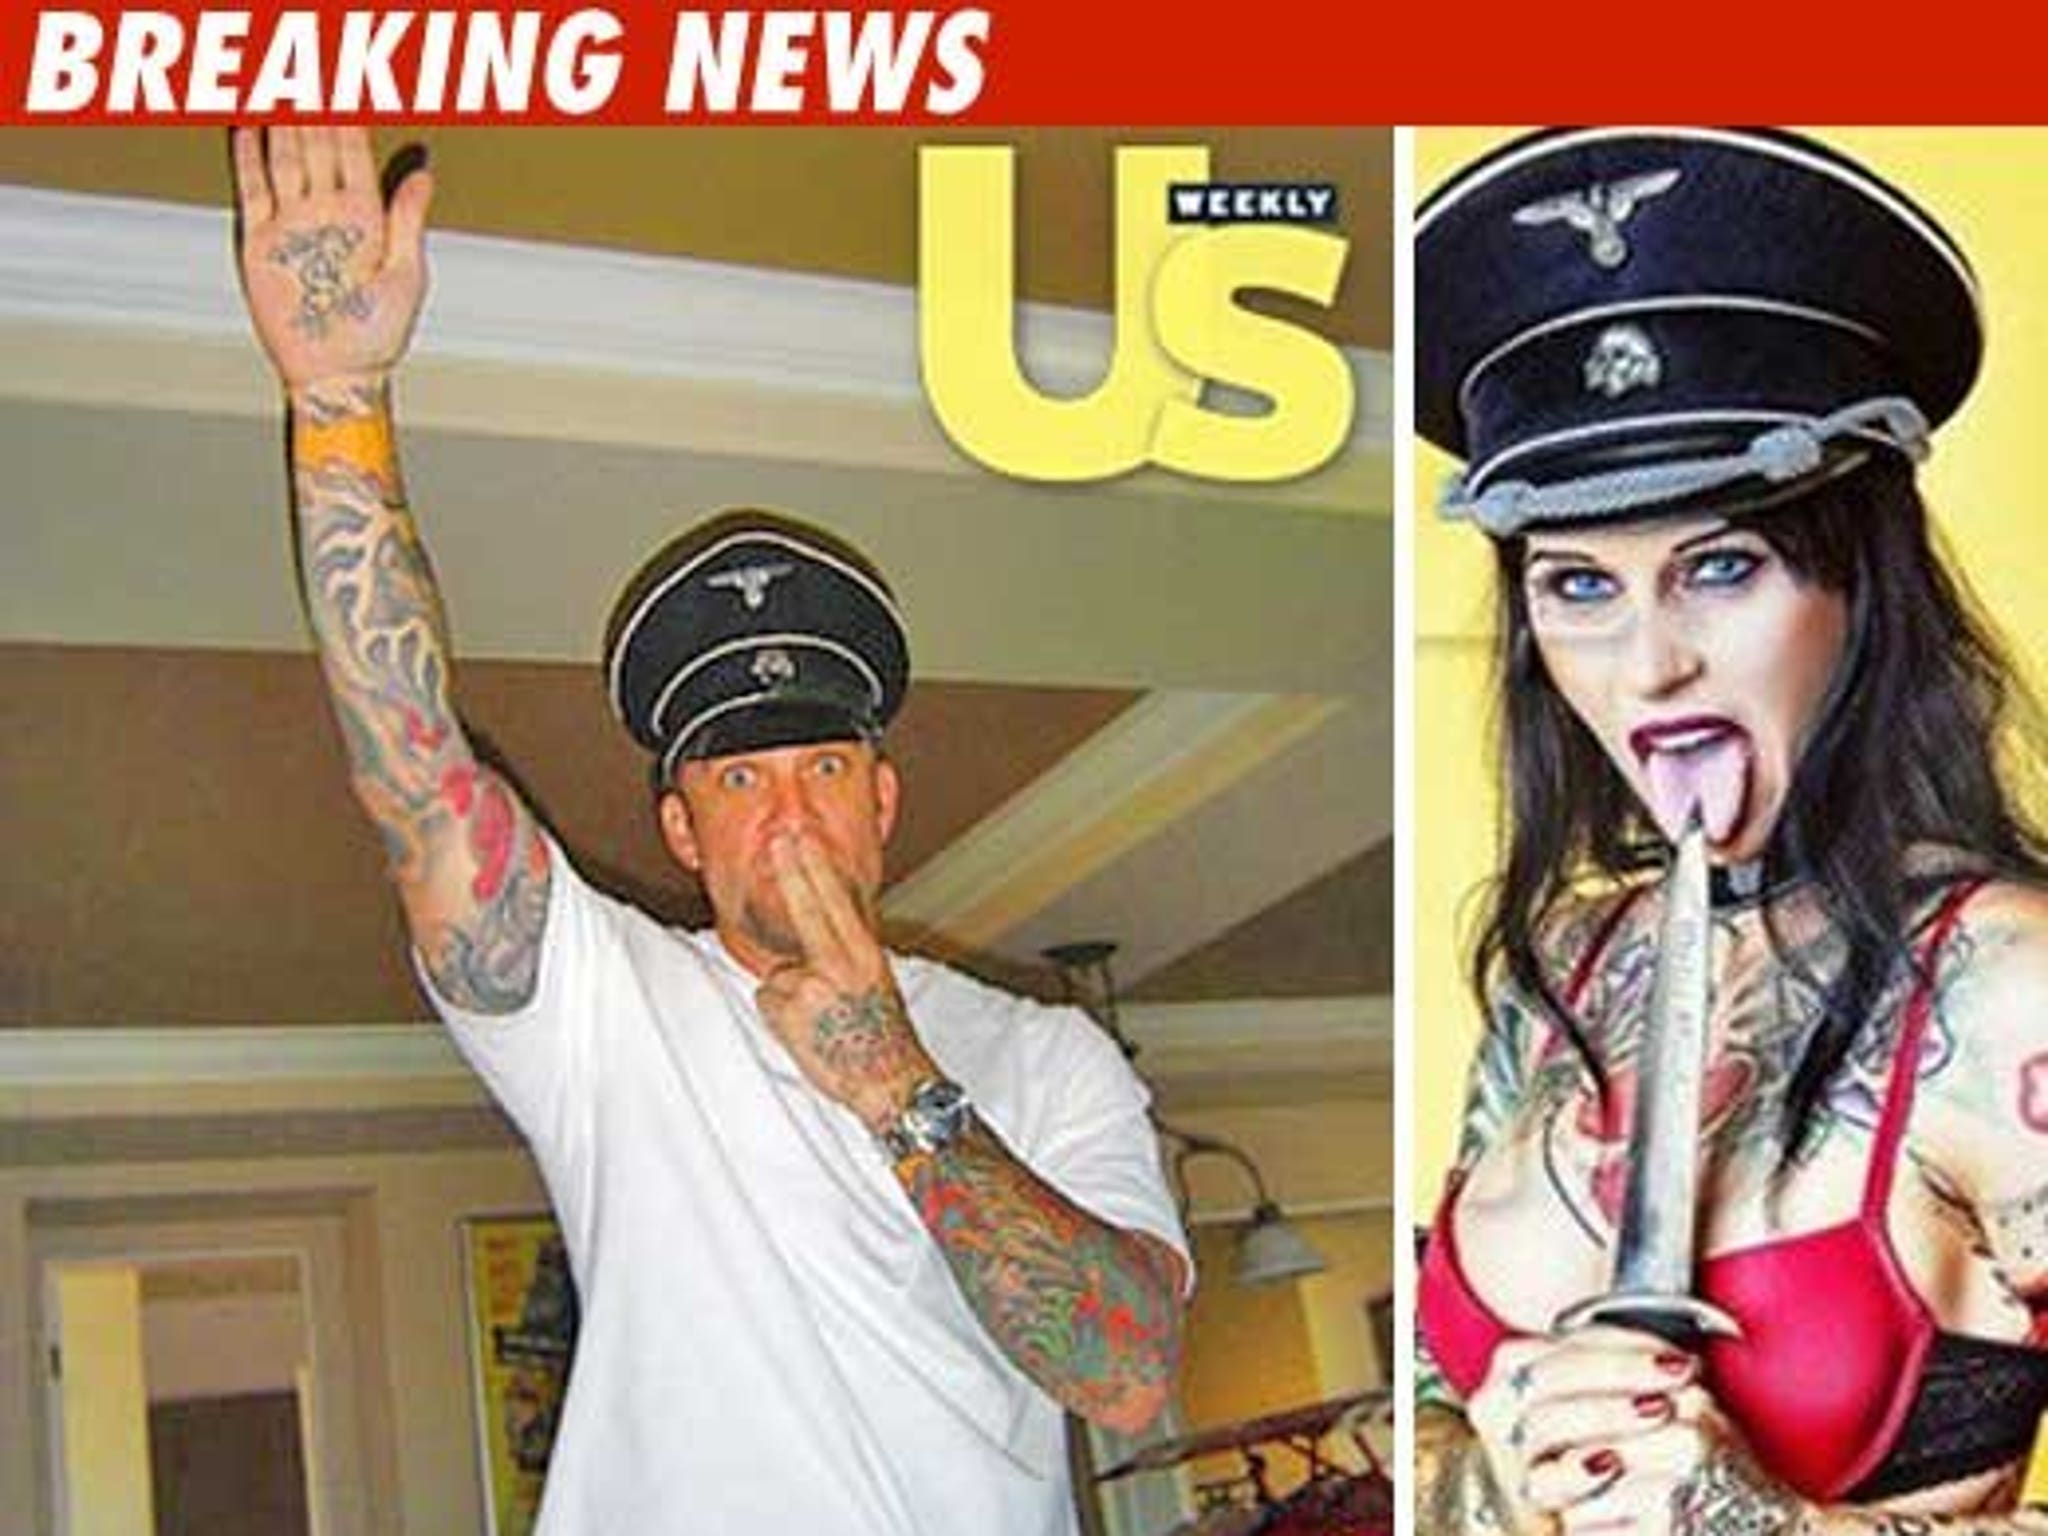 Jesse James -- The Photo You Did Nazi Coming